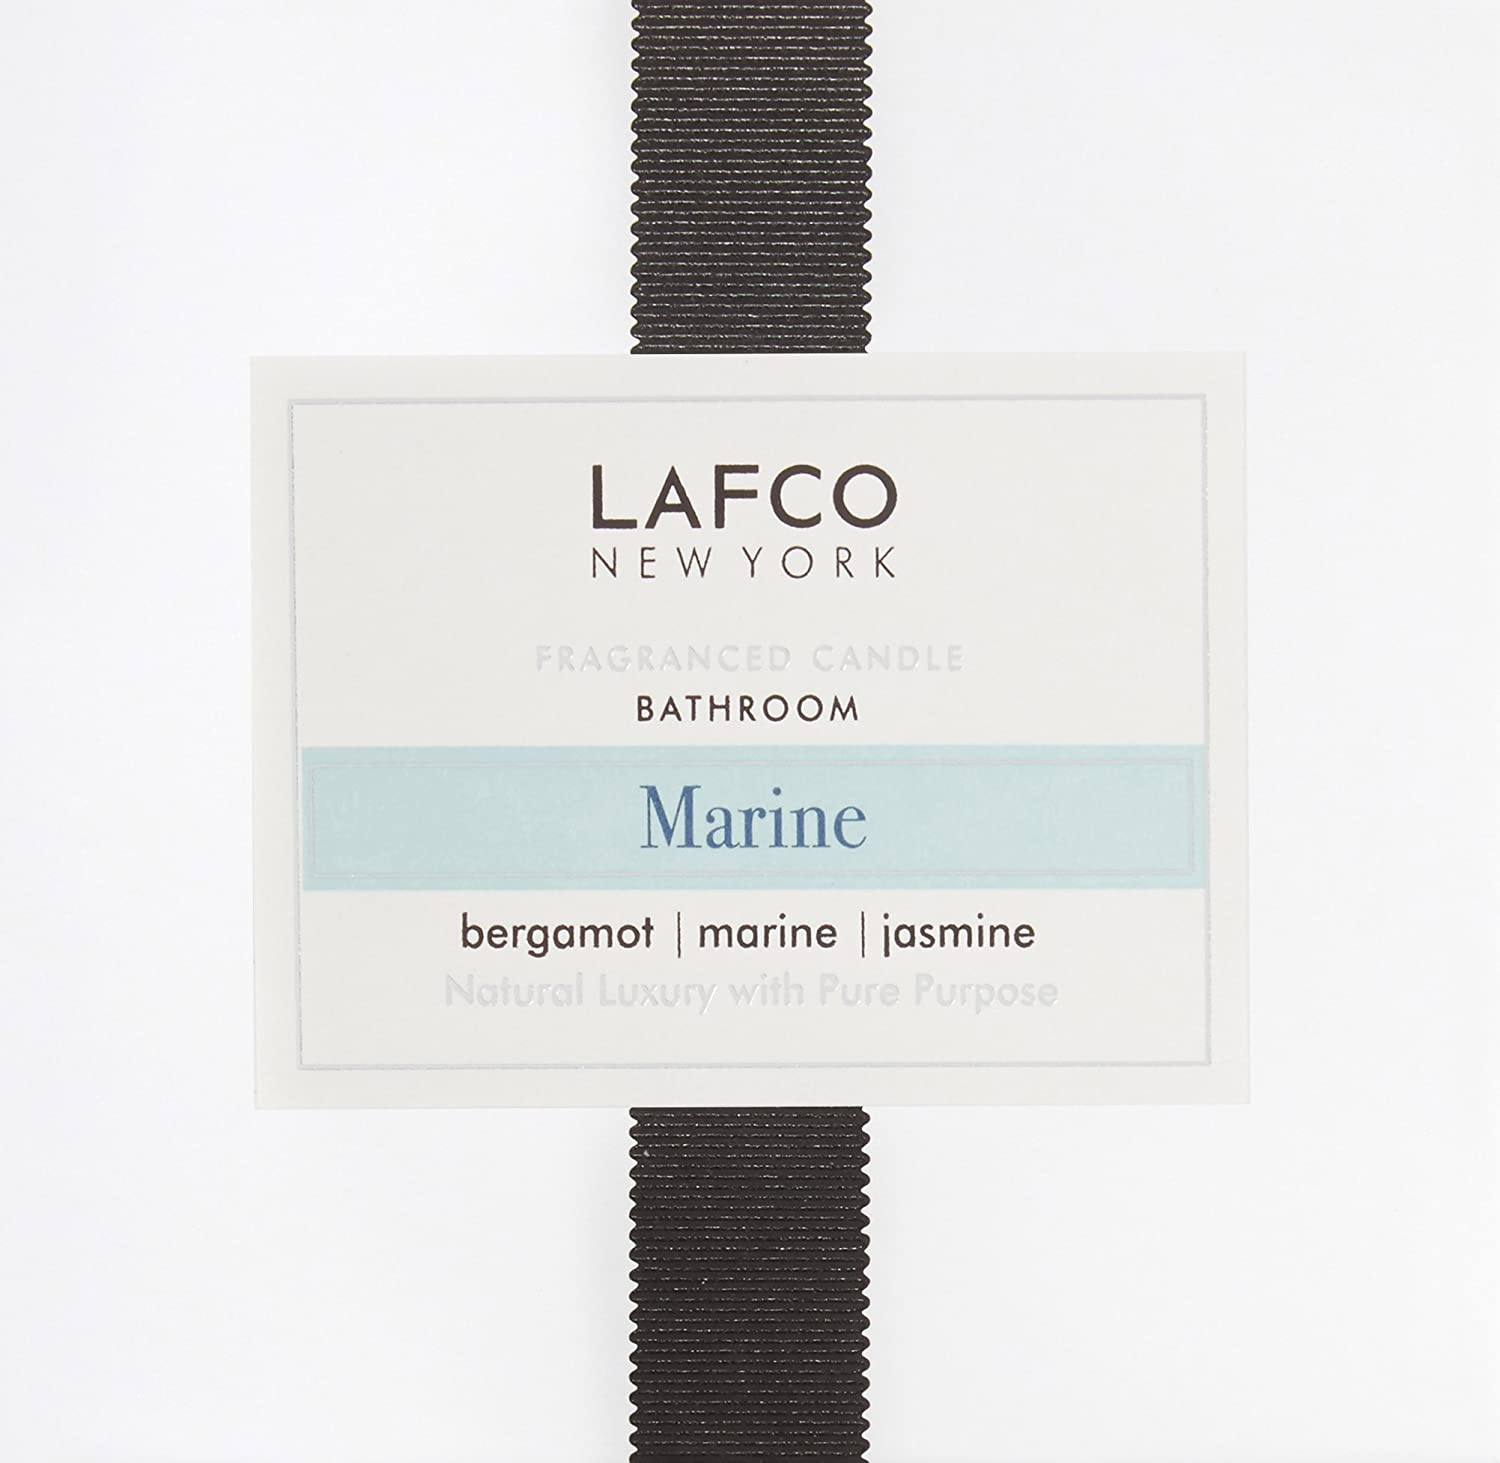 16oz LAFCO New York House /& Home Candle